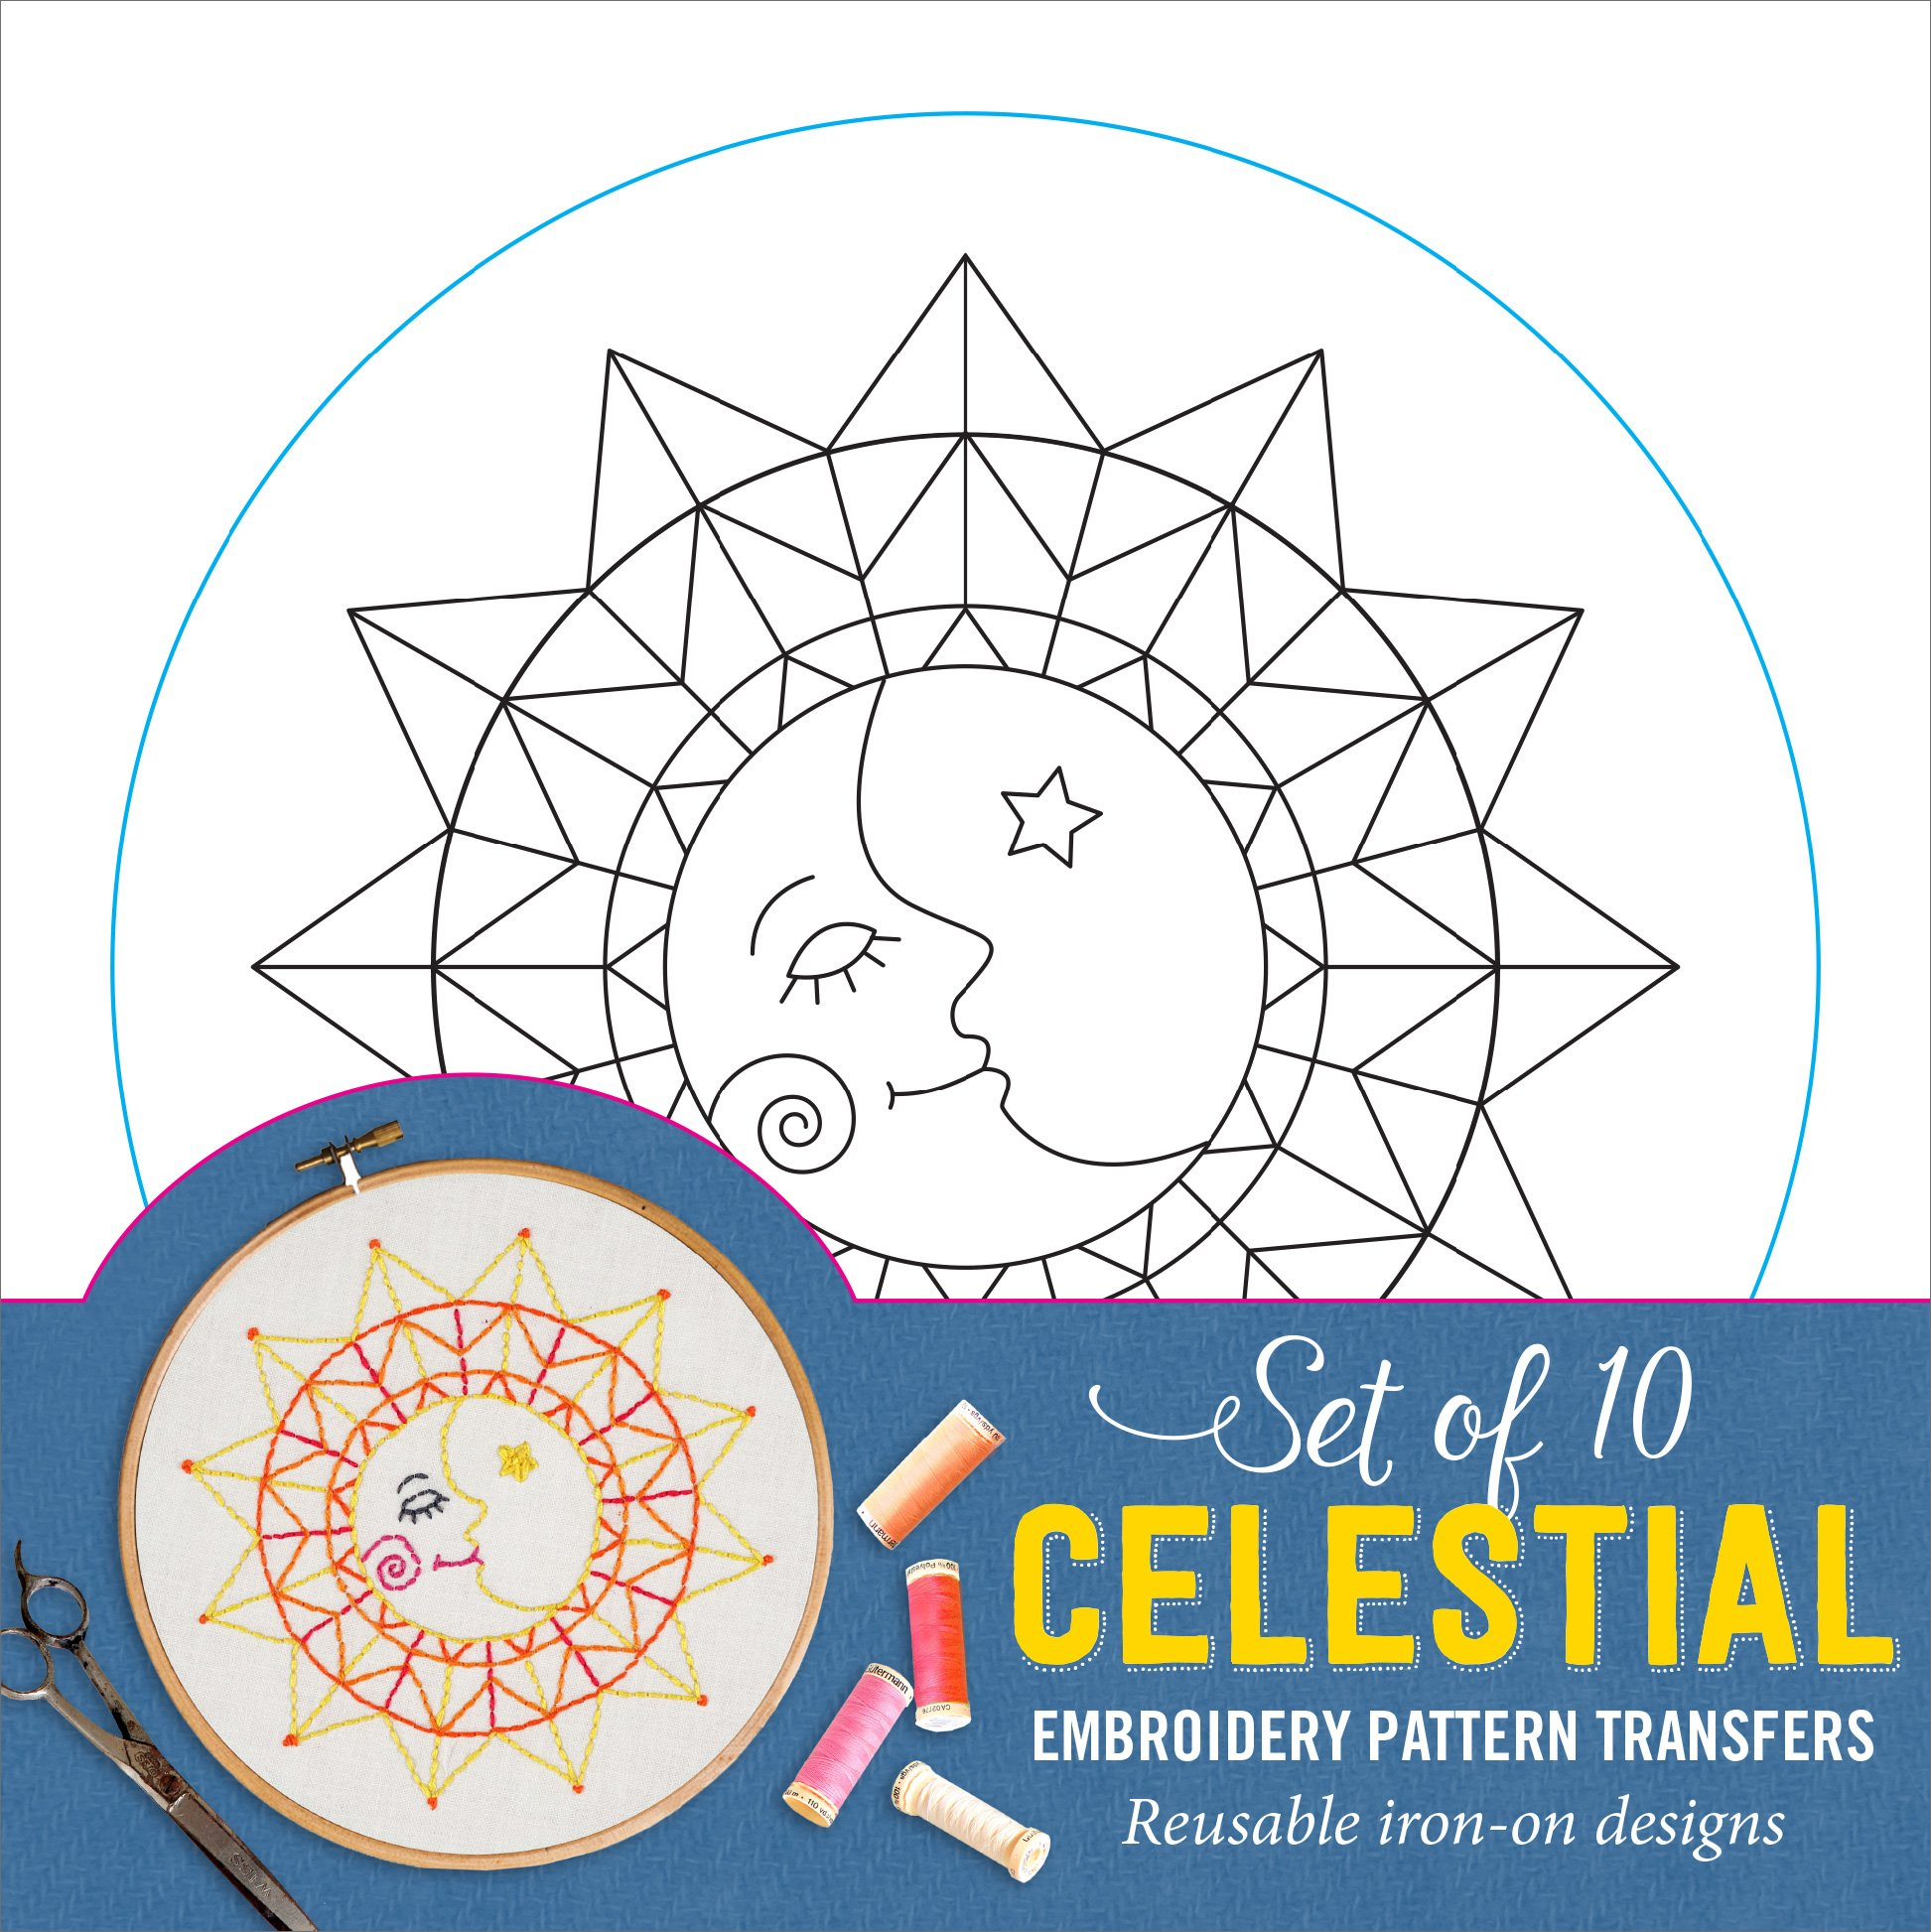 Celestial Embroidery Pattern Transfers (set of 10 hoop designs!)